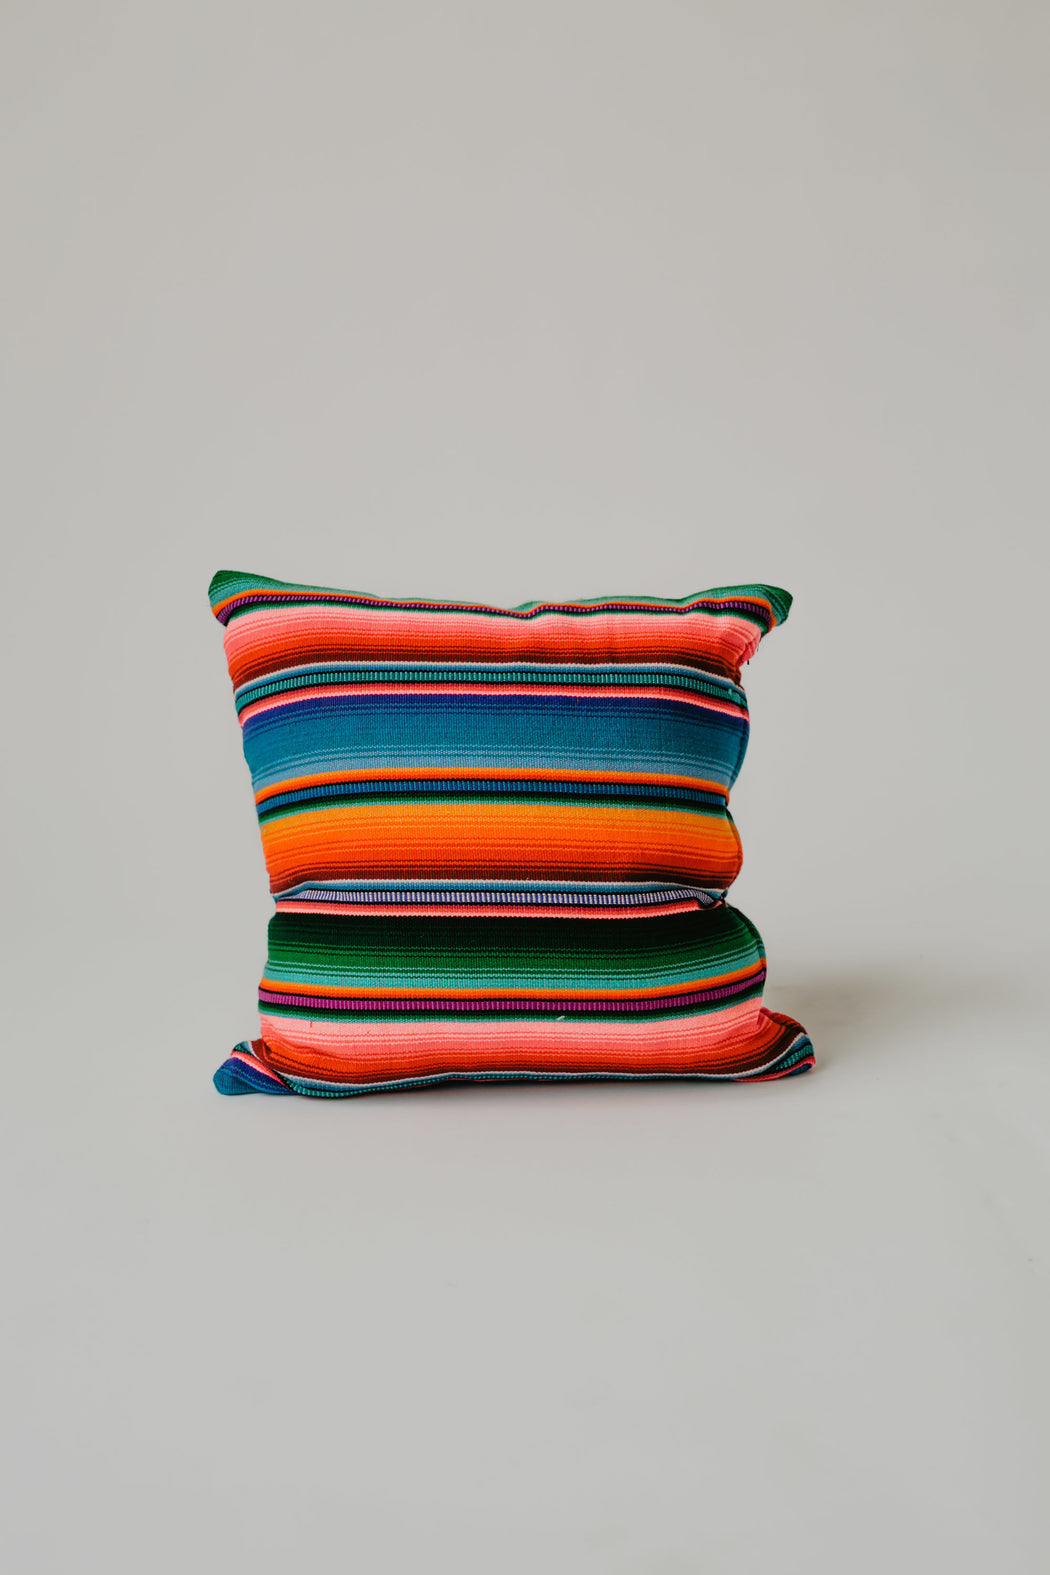 Woven Blanket Pillow (18 x 18) - Guatemalan Handbags // JOJI